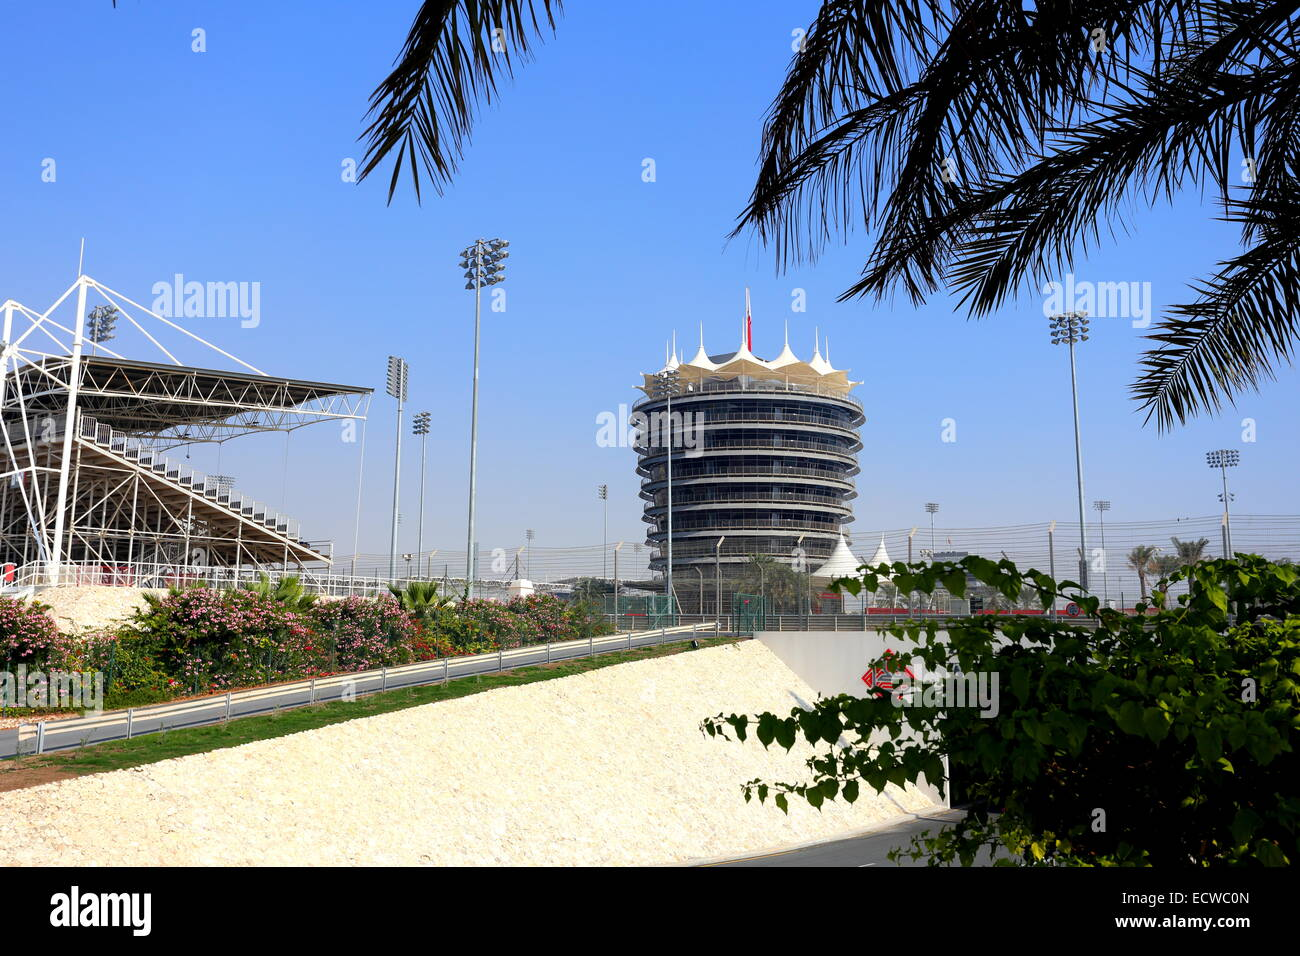 VIP tower and stand at the Formula 1 circuit, Sakhir, Kingdom of Bahrain - Stock Image